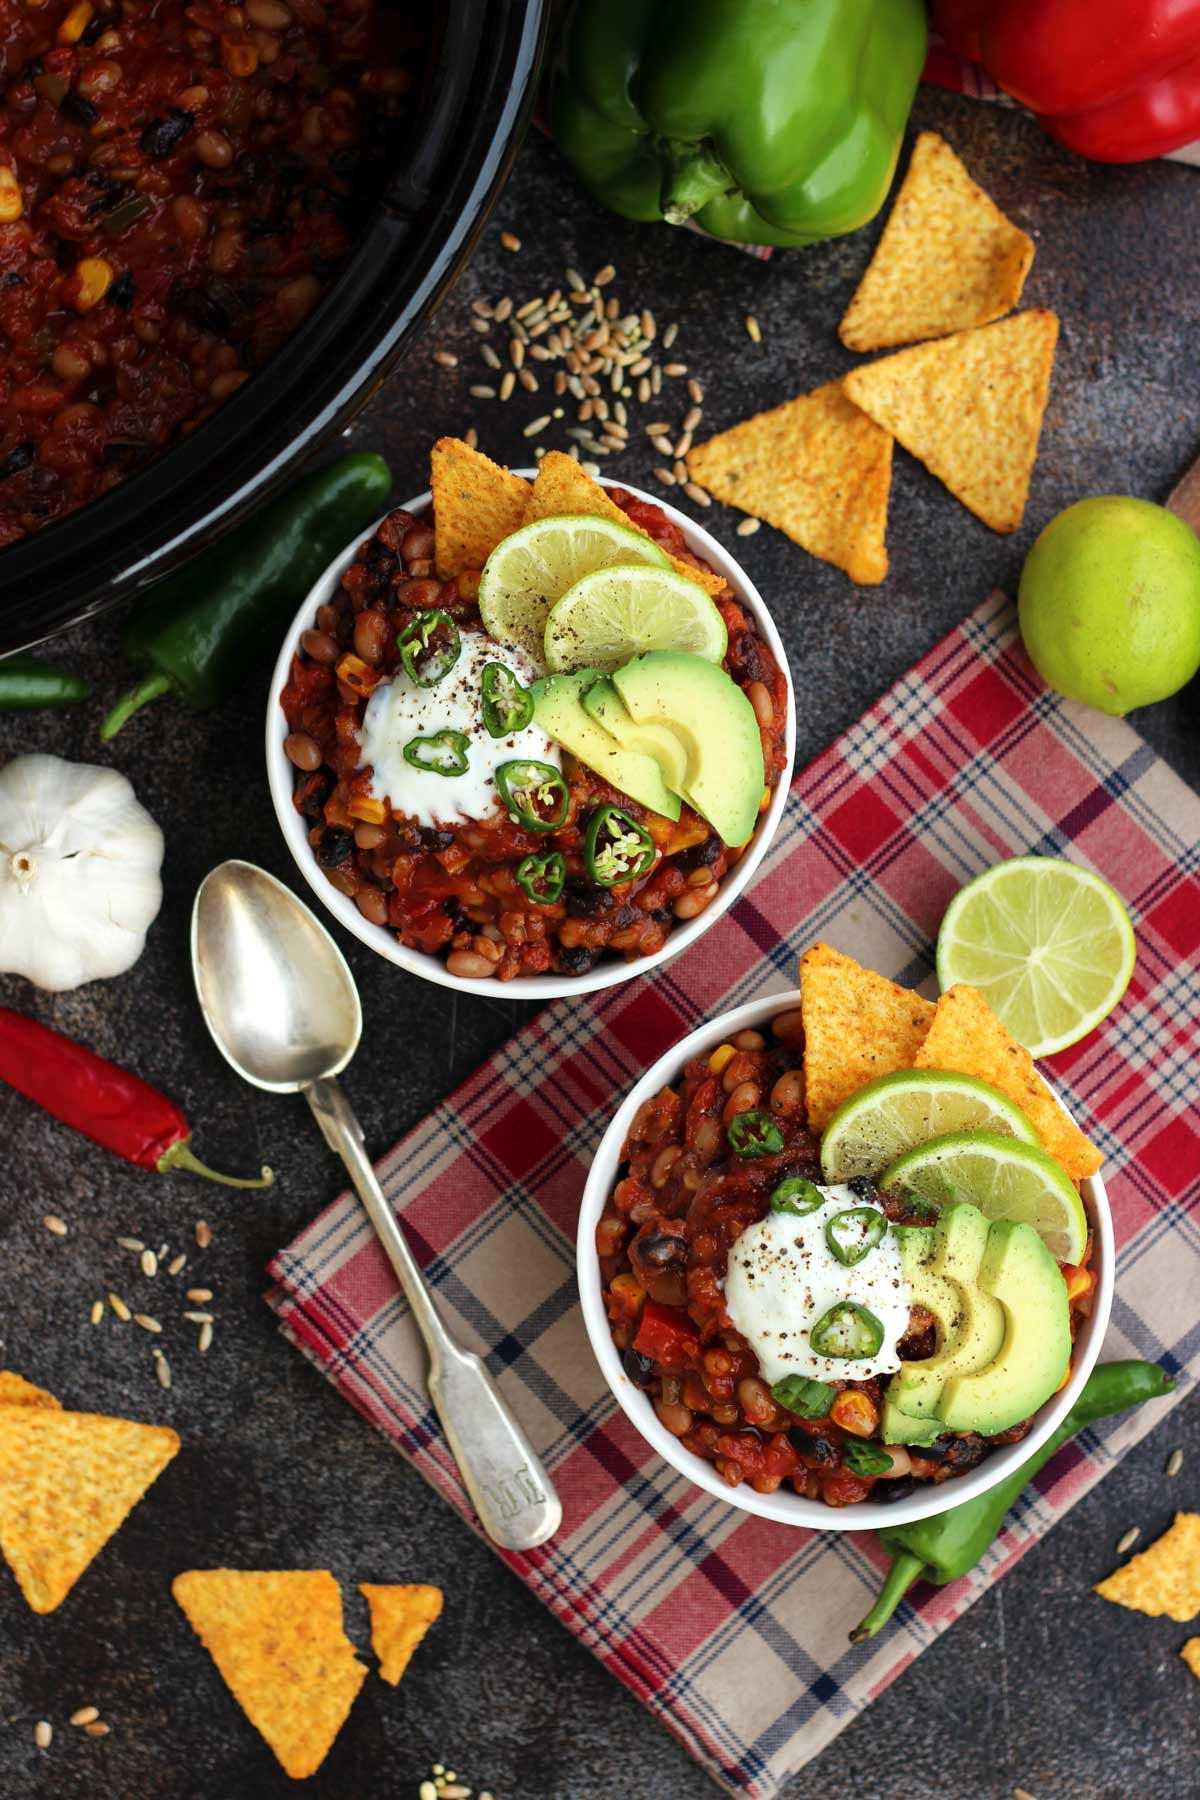 These family-friendly meals use pantry ingredients like beans, lentils, canned goods, pasta, rice, and broth, plus or minus staples that keep well in the freezer or refrigerator. These flexible recipes are all about using what you have on hand to make easy, delicious lunches and dinners! | glitterinc.com | @glitterinc // Slow Cooker Vegan Chili